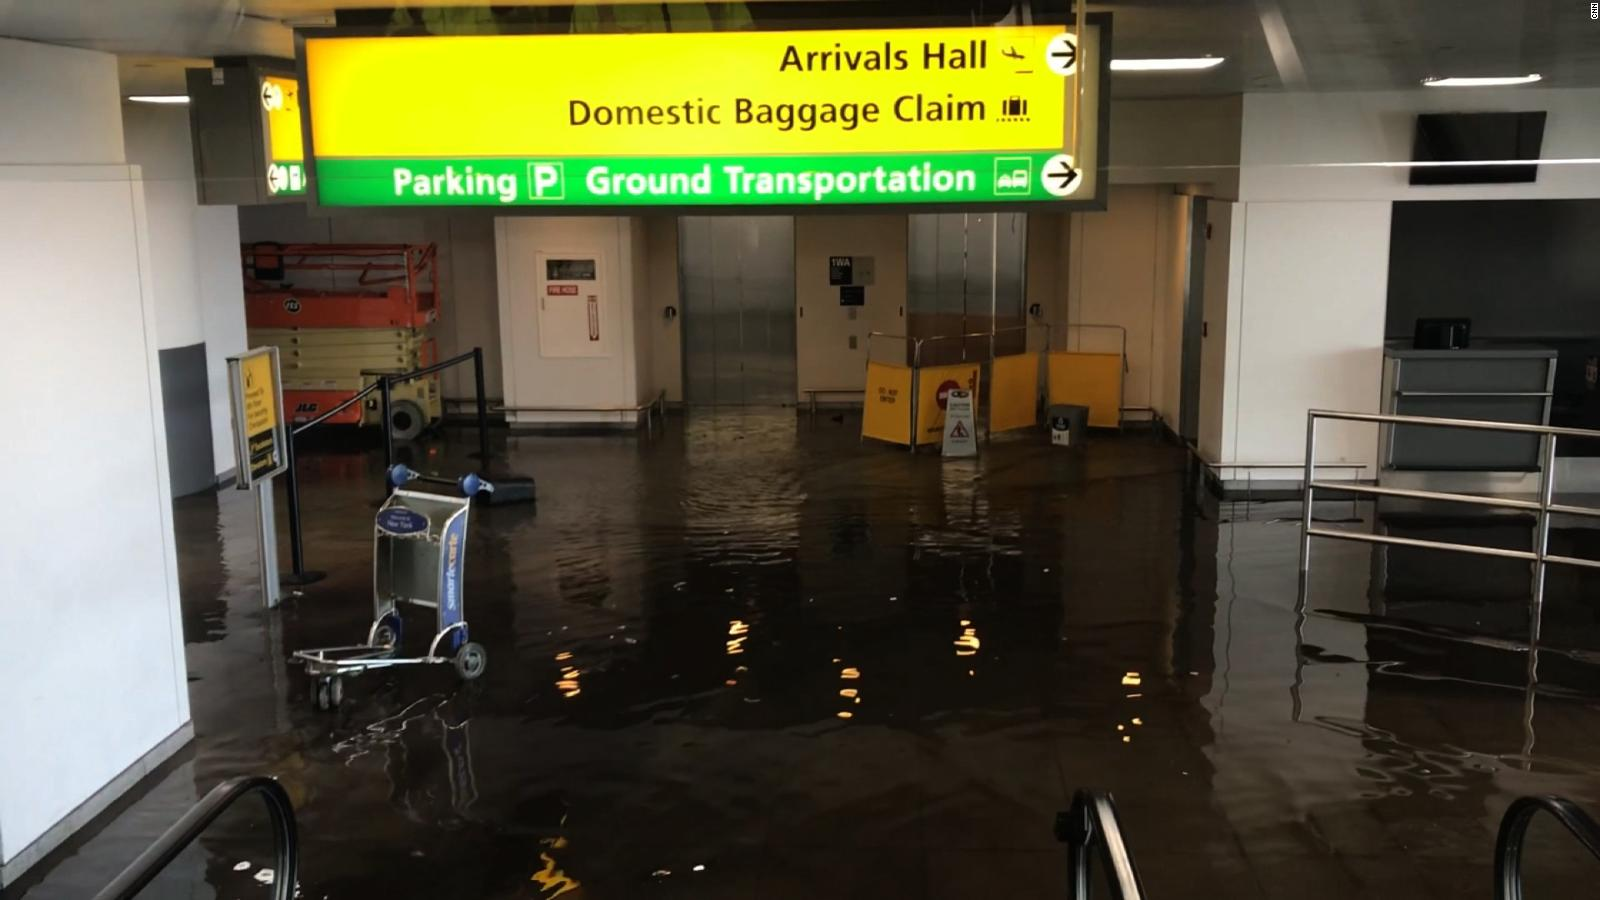 Jfk Airport Water Leak Floods Baggage Claim Forces Evacuation Cnn,Apartment Patio Decorating Ideas On A Budget